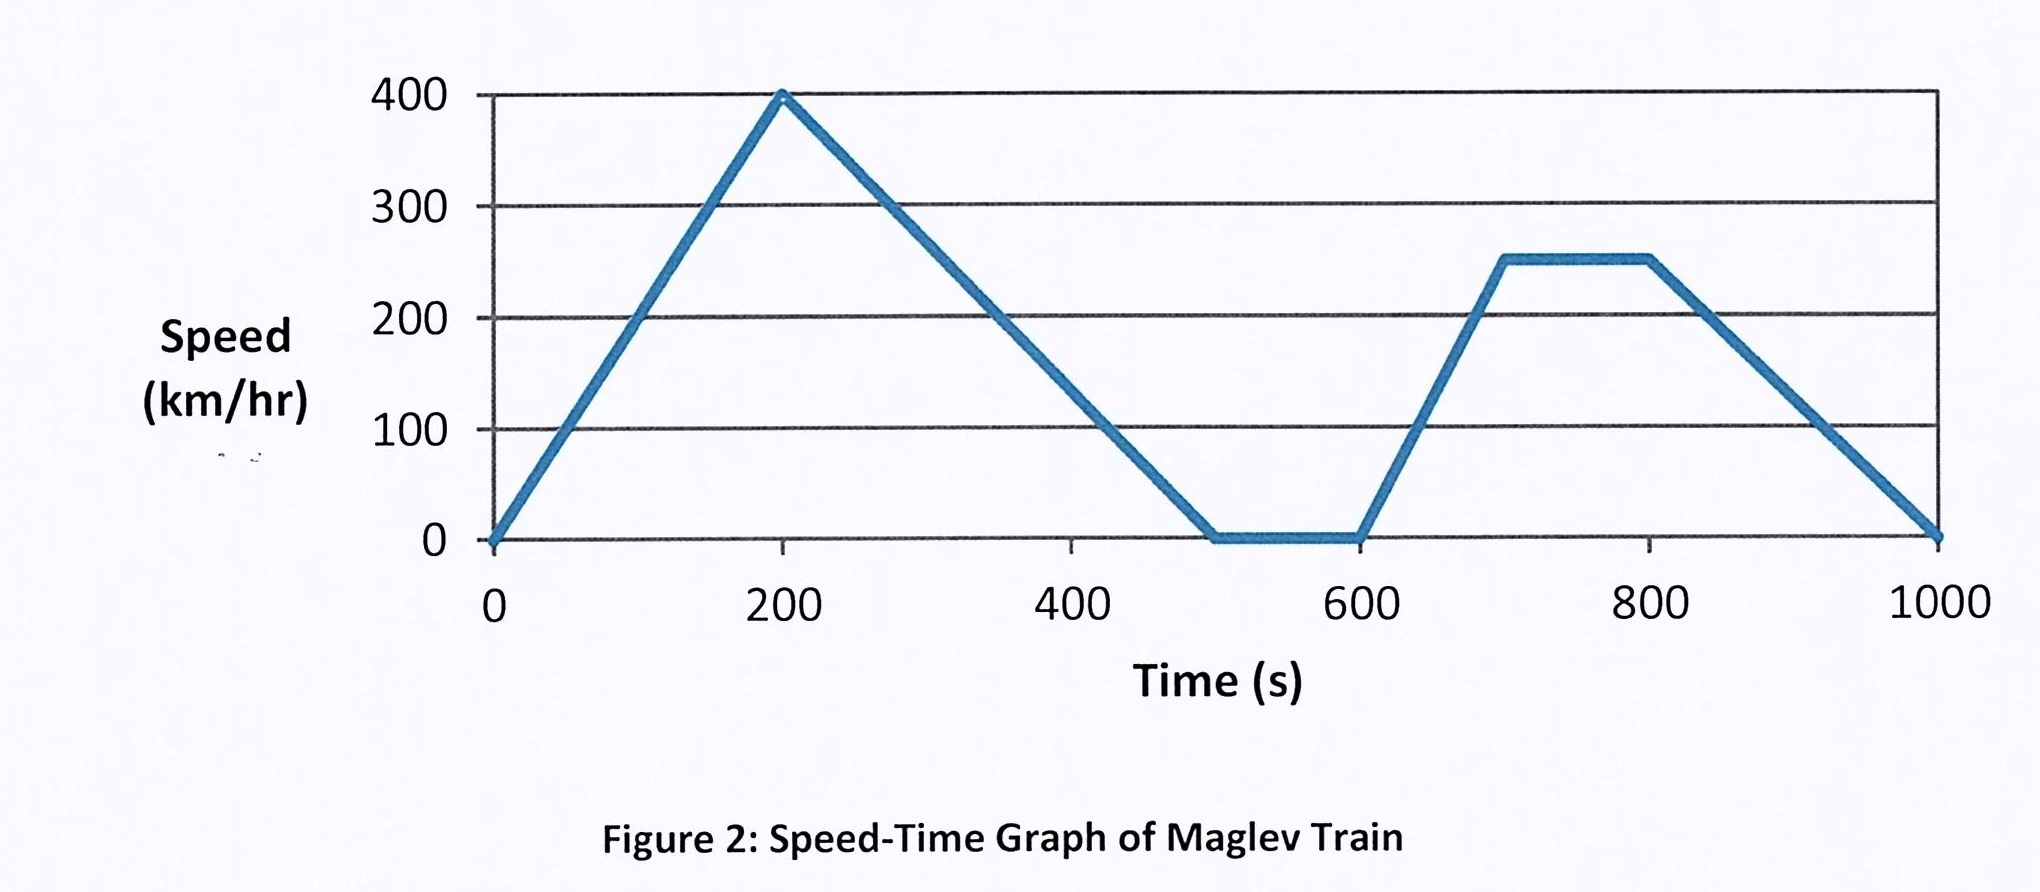 Solved: A Maglev Train's Speed Profile Was Recorded And Is